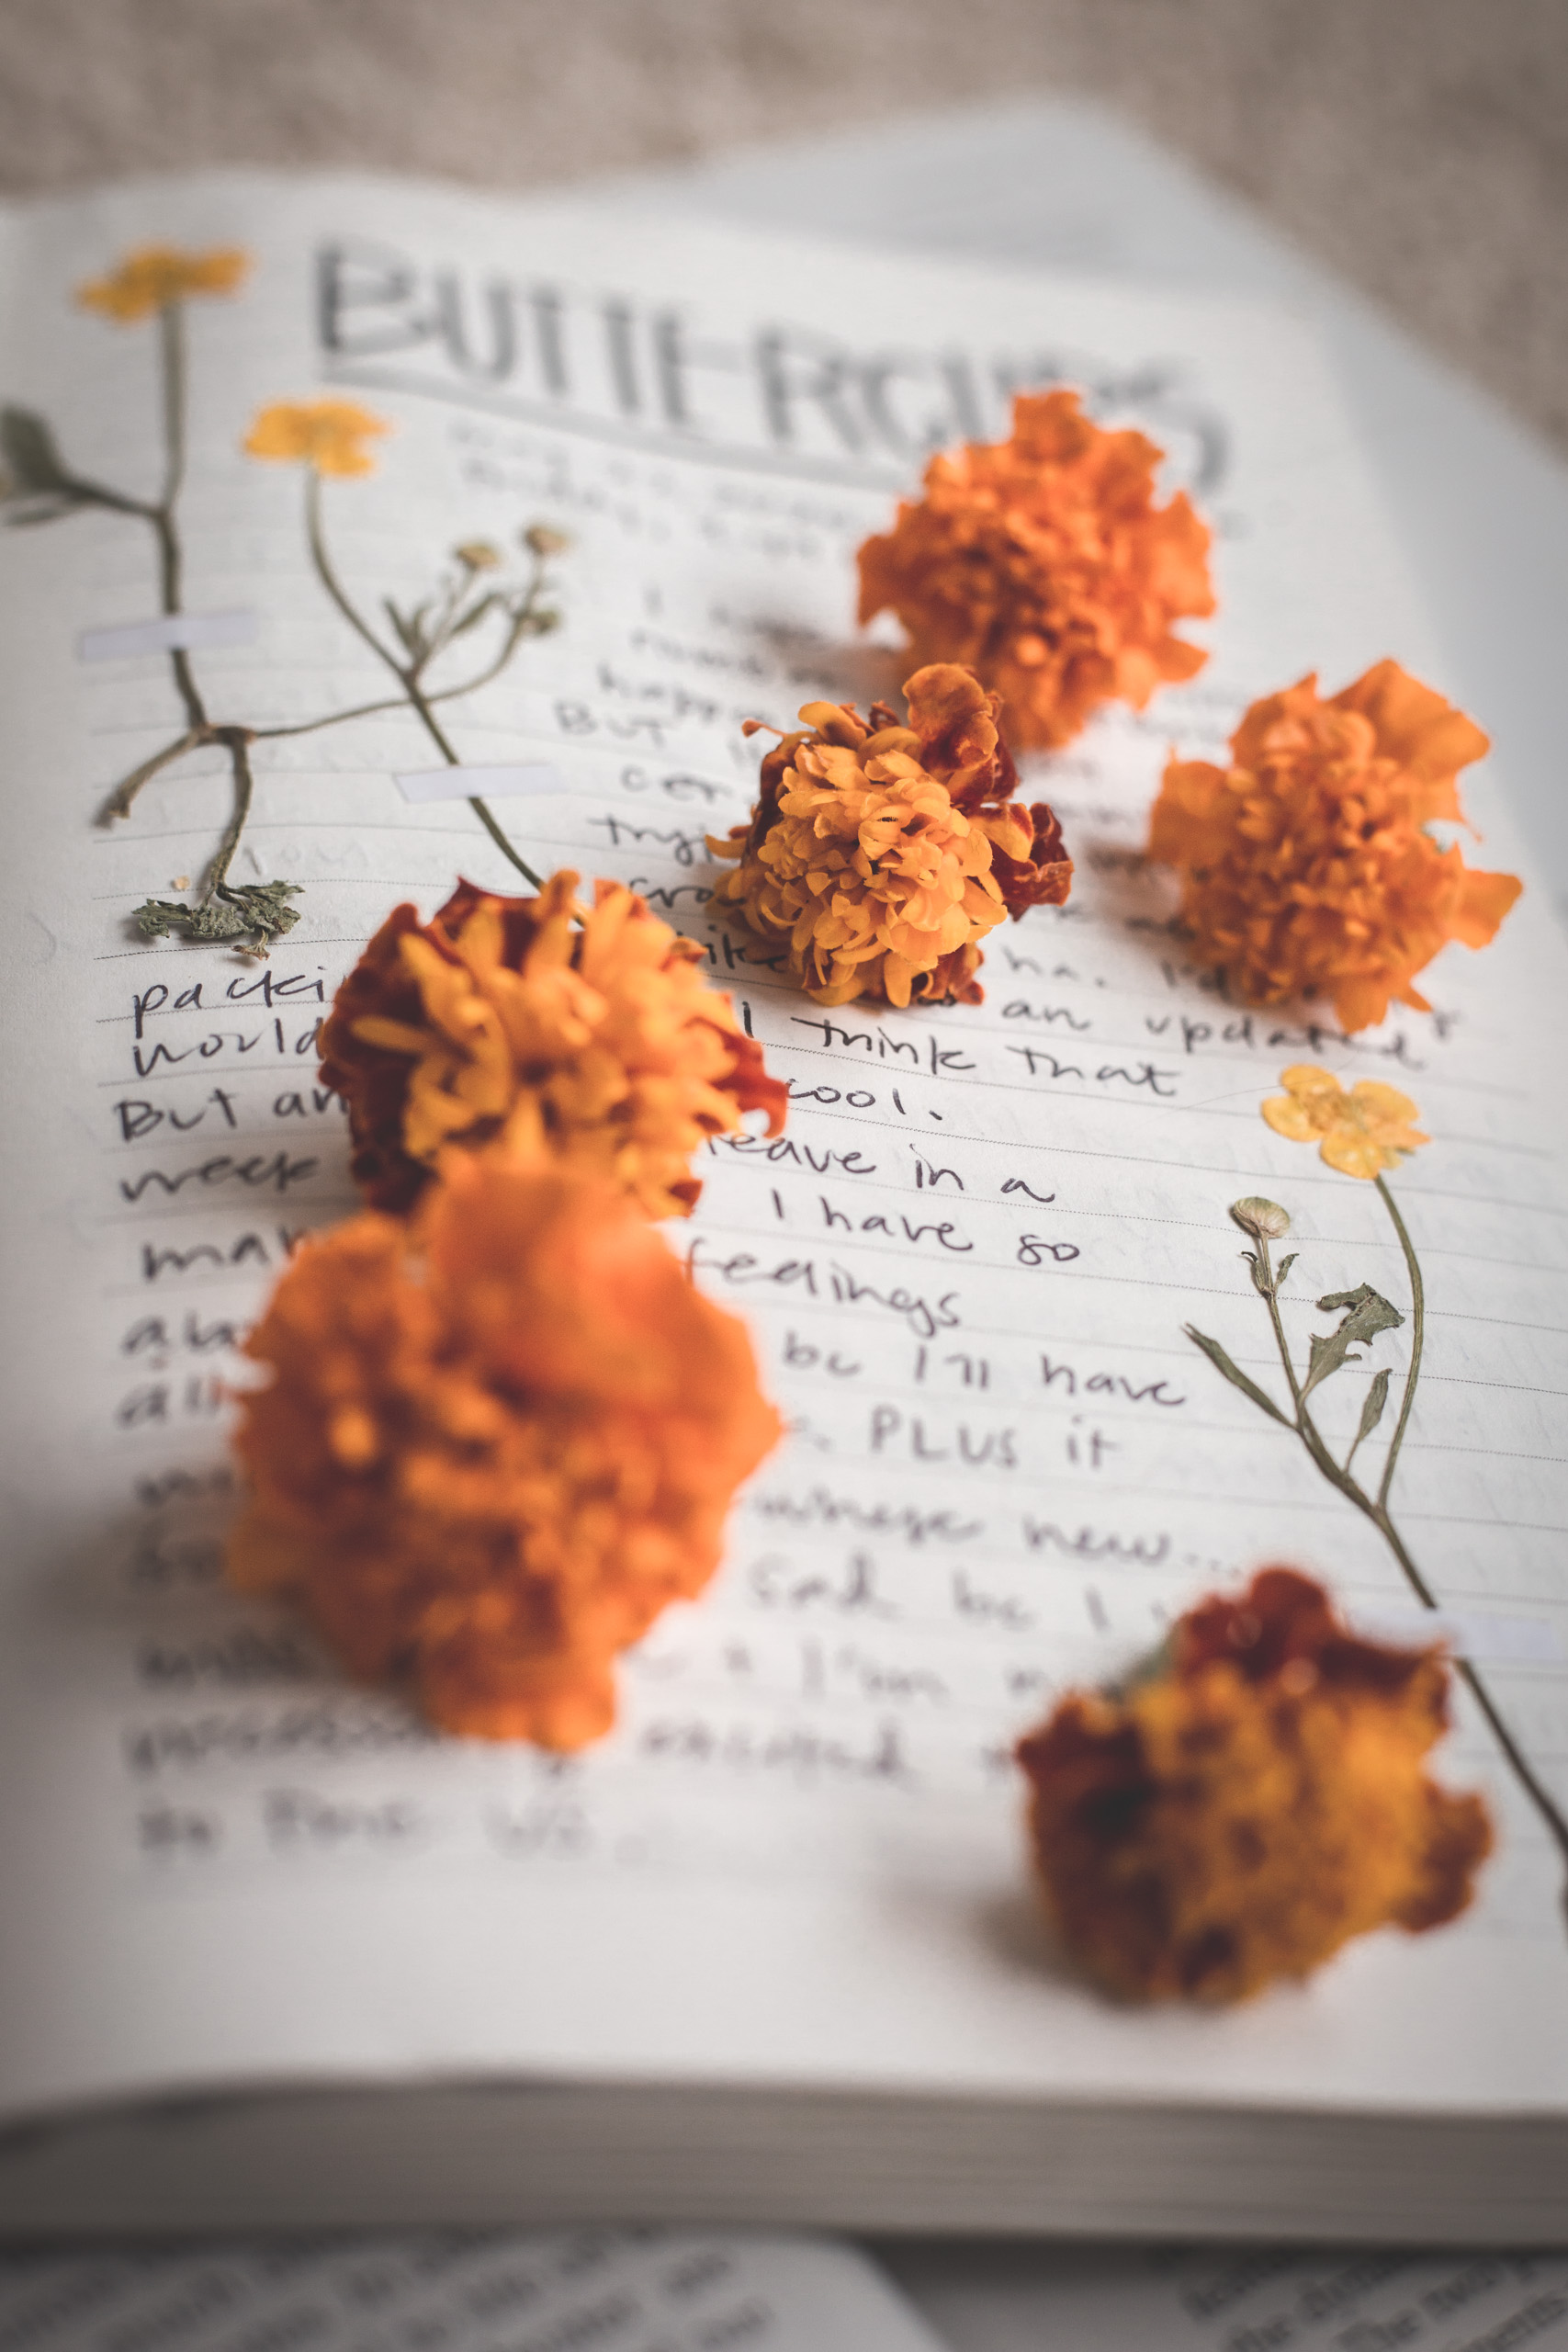 Notebook with small yellow buttercup flowers pasted in it, with black writing that says 'BUTTERCUPS' and writing on the page, sprinkled with orange marigold flowers